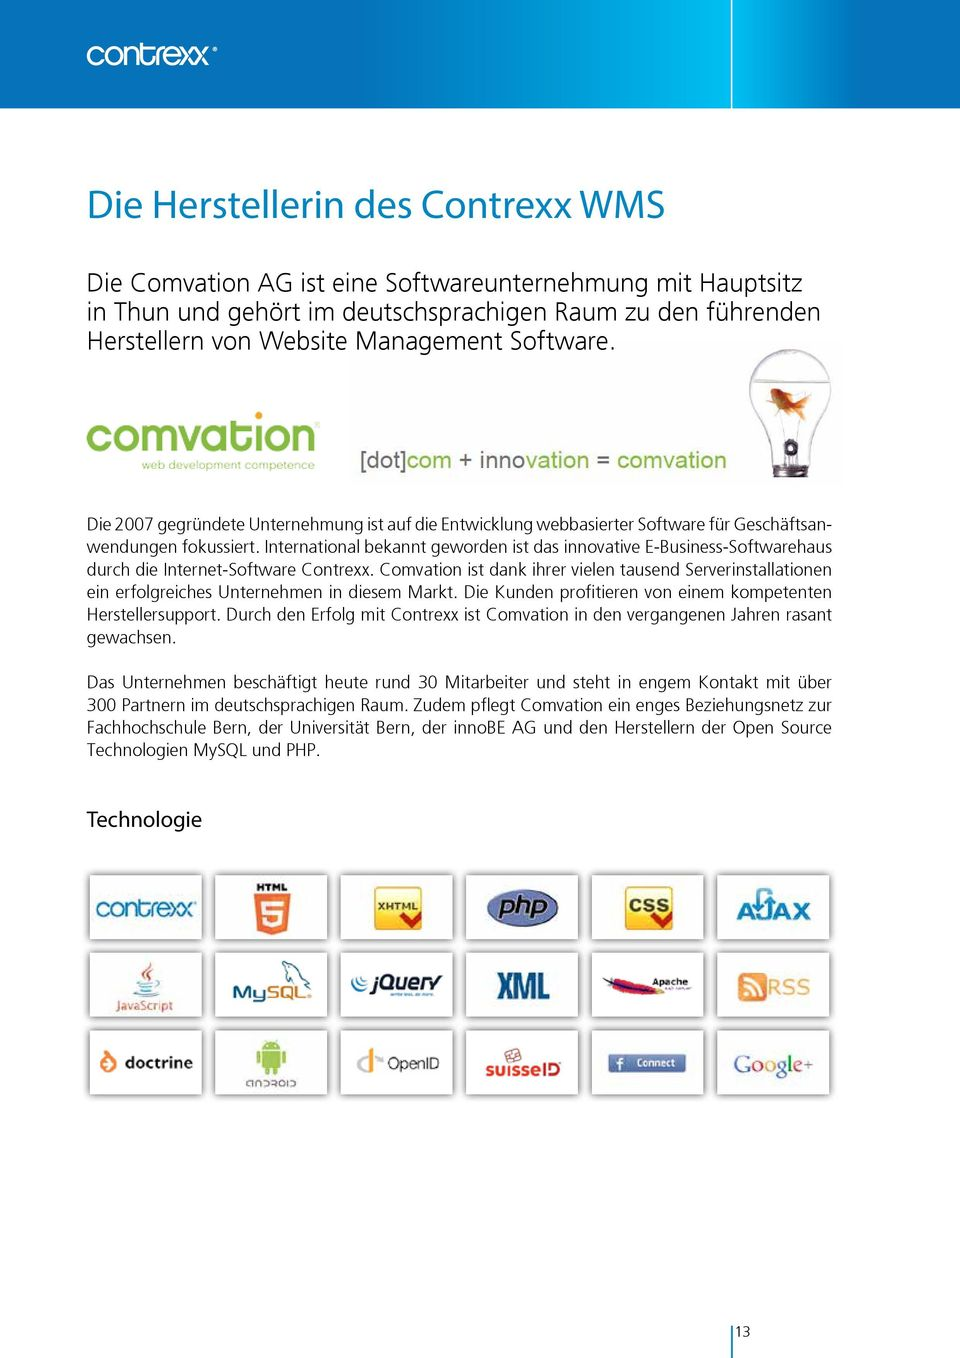 International bekannt geworden ist das innovative E-Business-Softwarehaus durch die Internet-Software Contrexx.